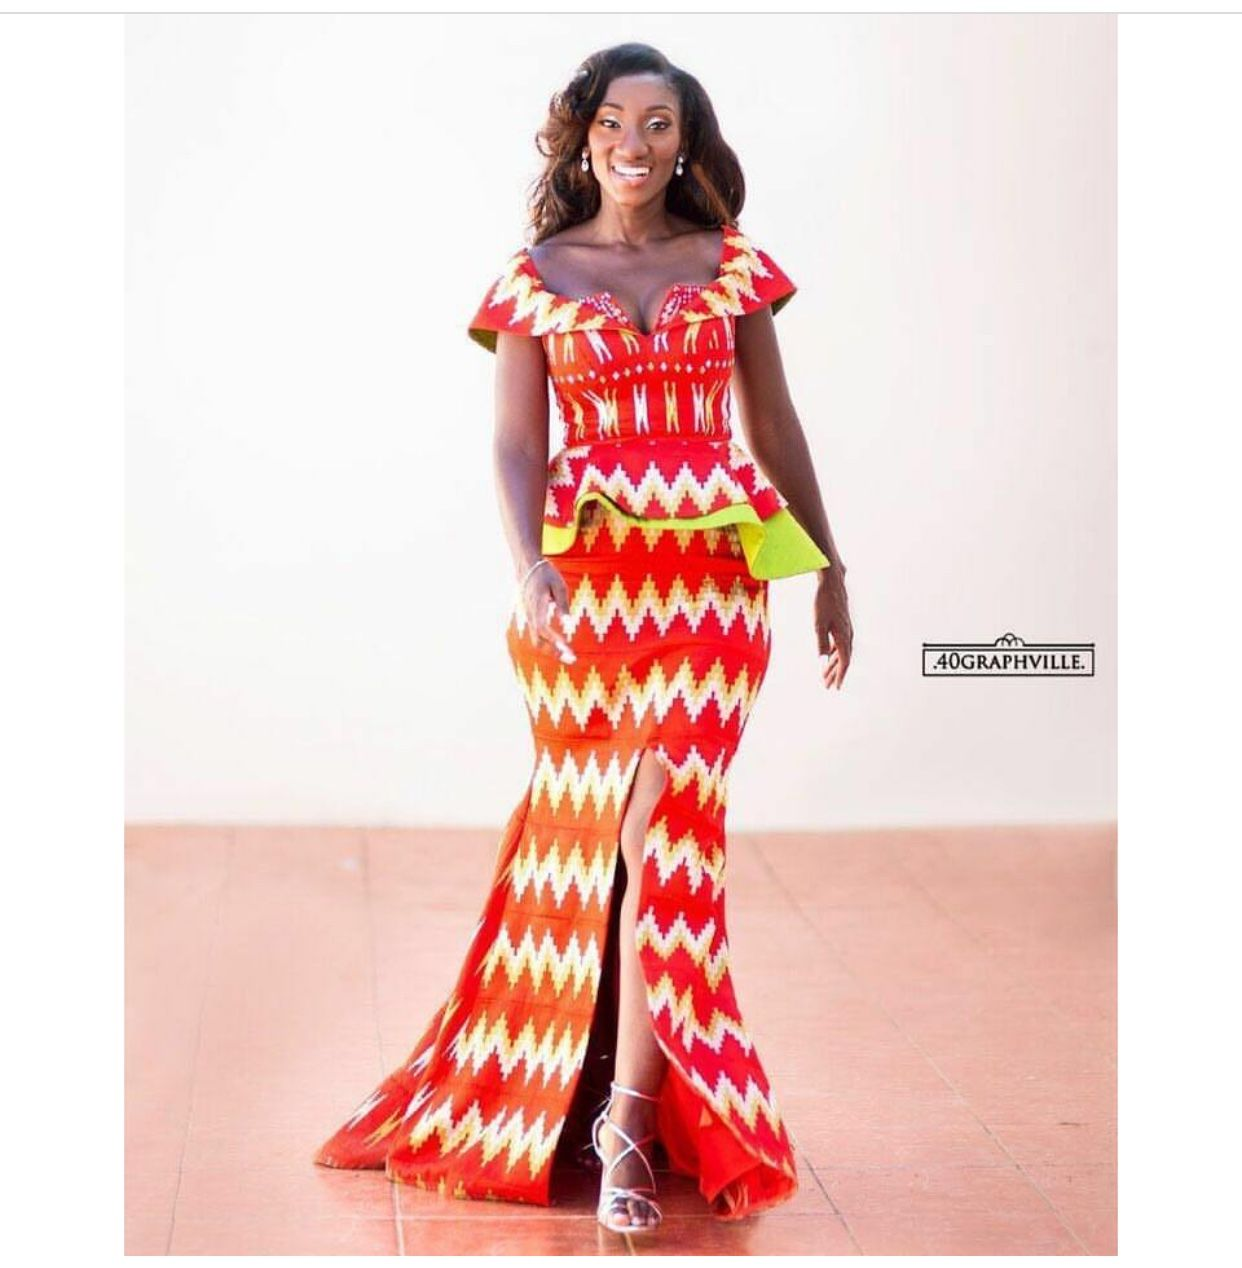 Such a bold and daring color on this melanin beautytraditional